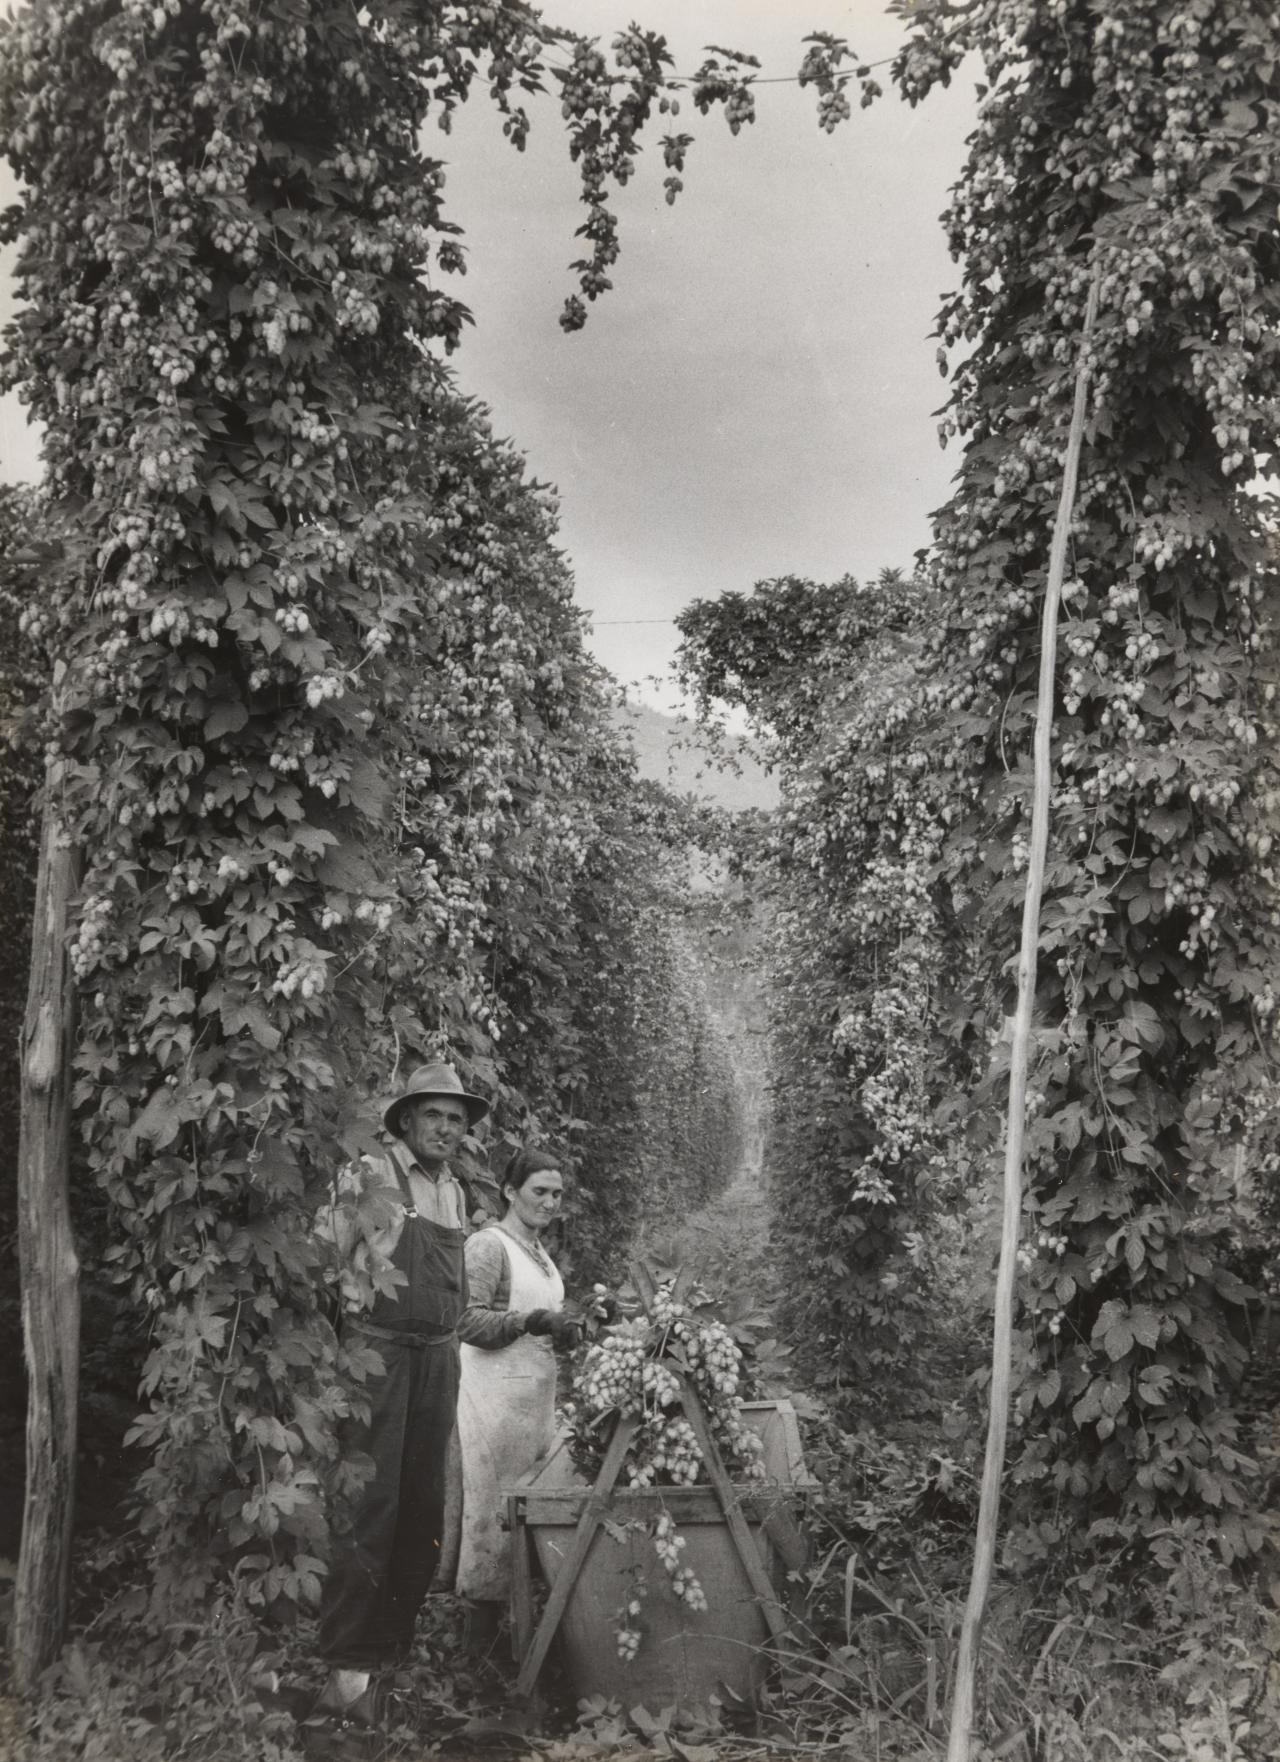 Hop pickers at Rostrevor hop garden in Victoria's picturesque Ovens Valley.